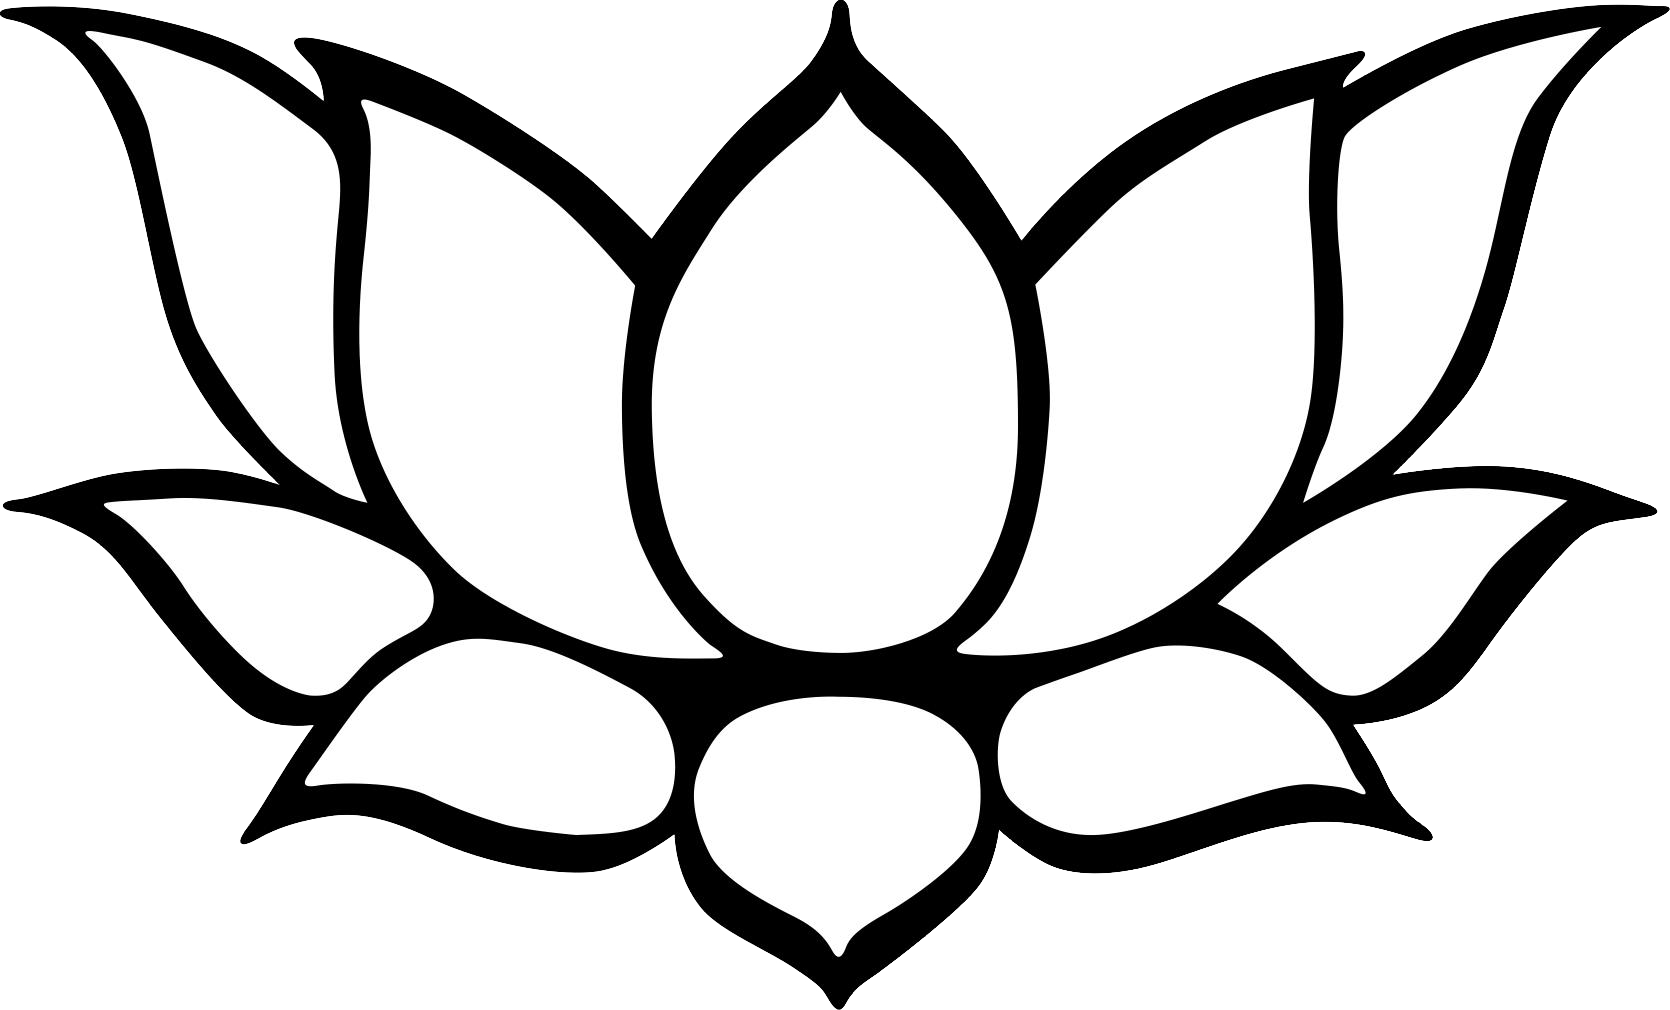 Flower drawing clipart svg lotus (1670x1010) http://www.clipartbest.com/clipart-jcxdEEjcE ... svg